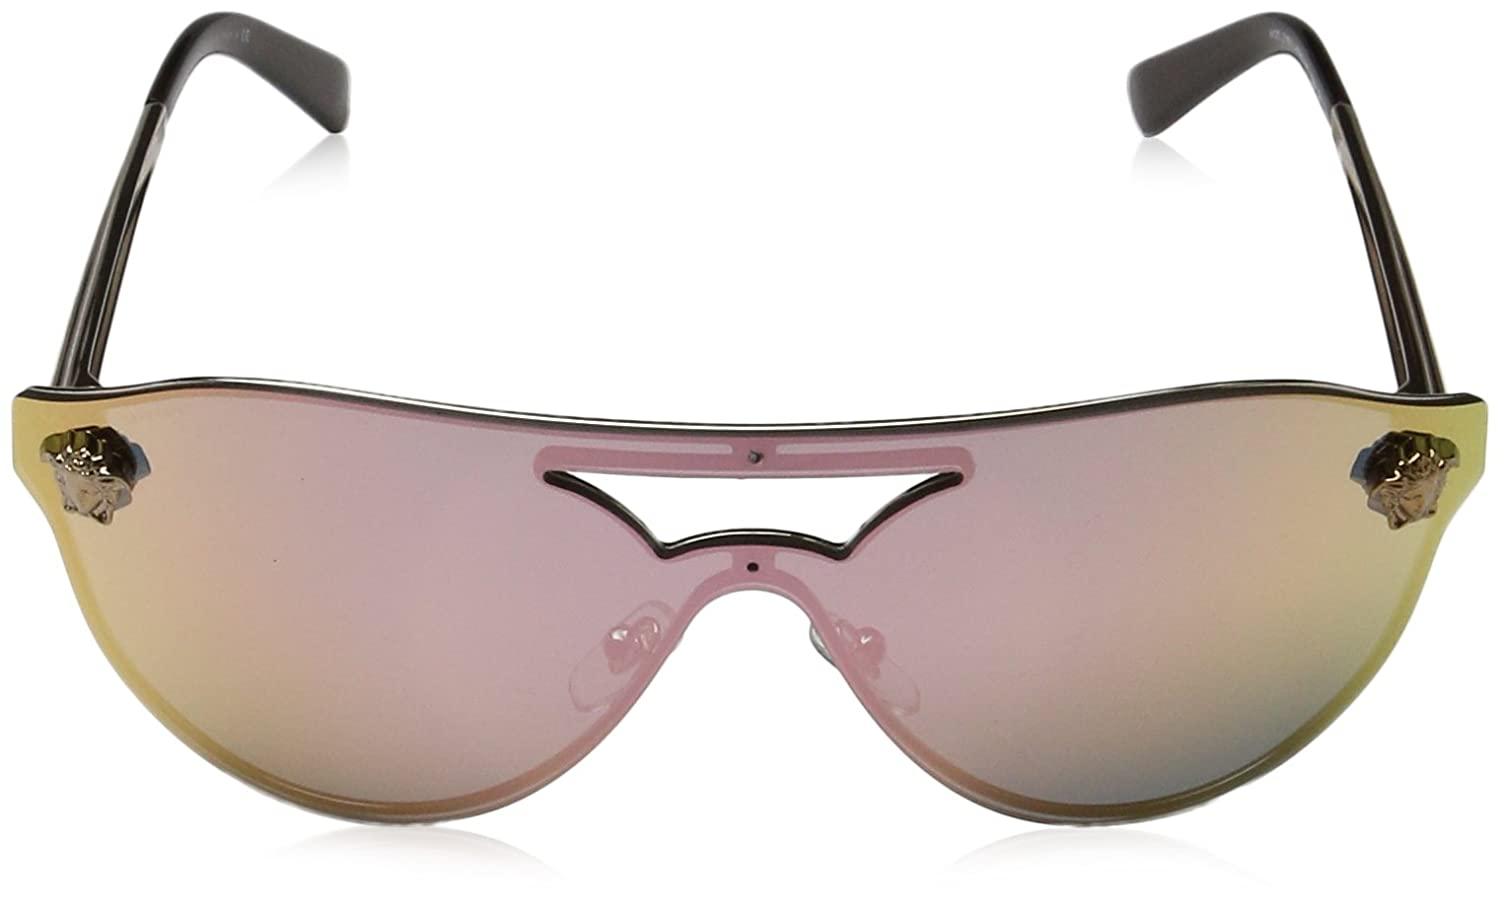 Amazon.com: Versace VE2161 - Gafas de sol para mujer: Clothing